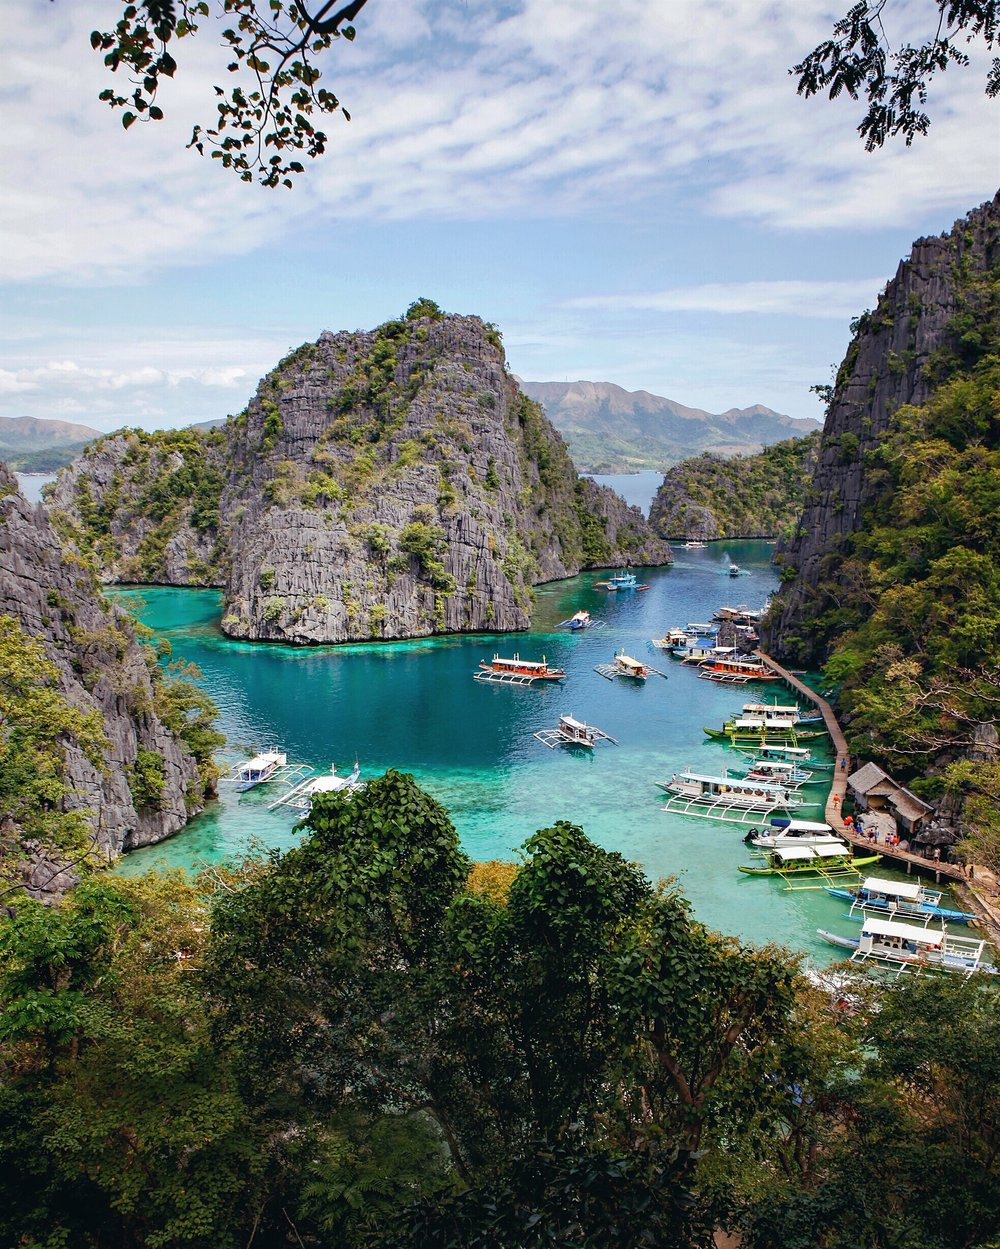 Coron - There are endless natural wonders near Coron accessible via bangka (outrigger boat), available for private rentals or through a tour. The popular Kayangan Lake is a salt and freshwater lake entirely enclosed by Palawan's massive limestone cliffs. Other swimming holes nearby included Barracuda Lake (less crowded but just as beautiful) and Twin Lagoon (clear, calm waters–perfect for swimming)